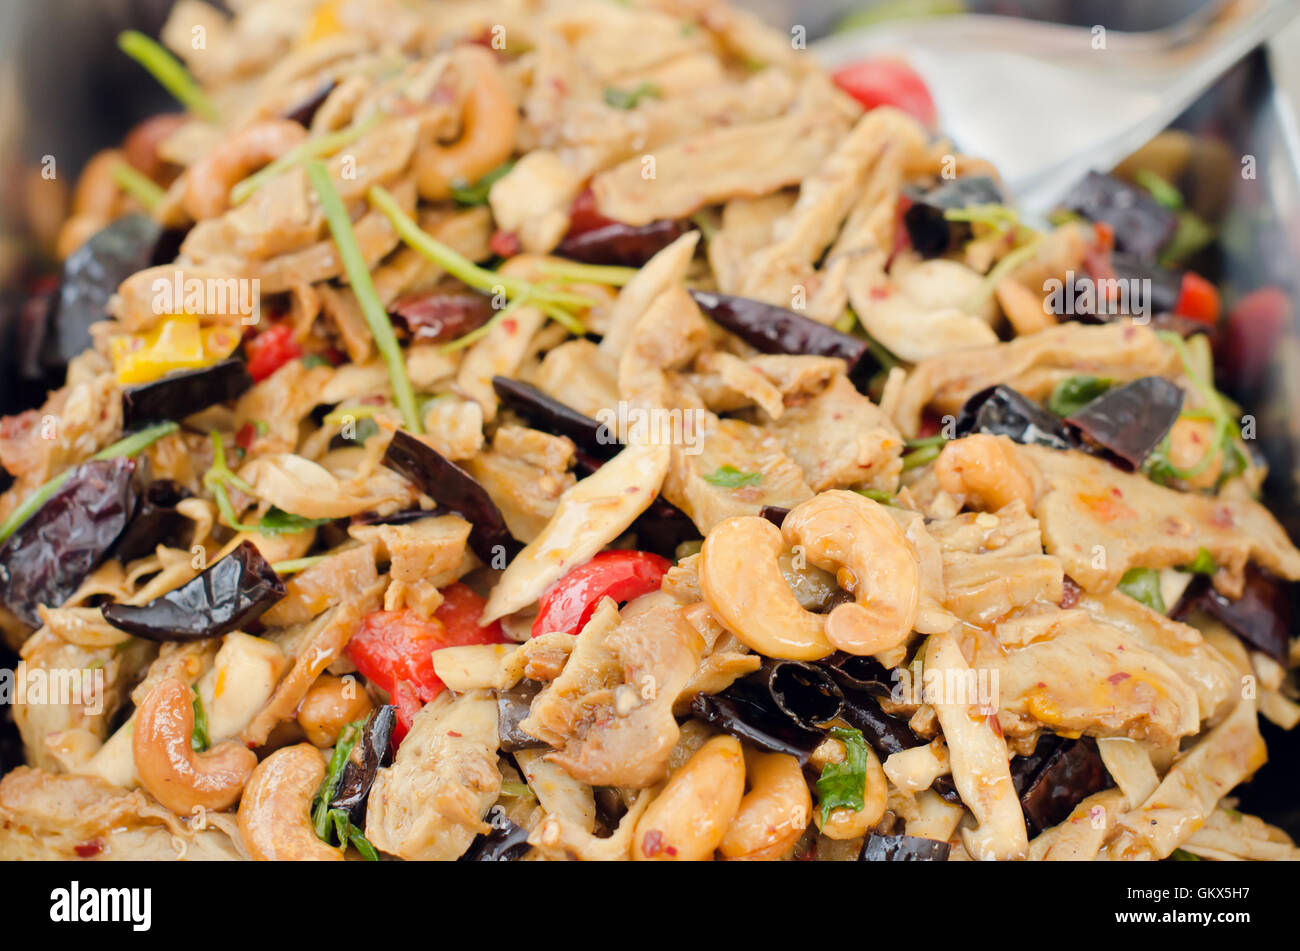 Thai food, stir fired chicken with cashew nuts a famous thai dish - Stock Image